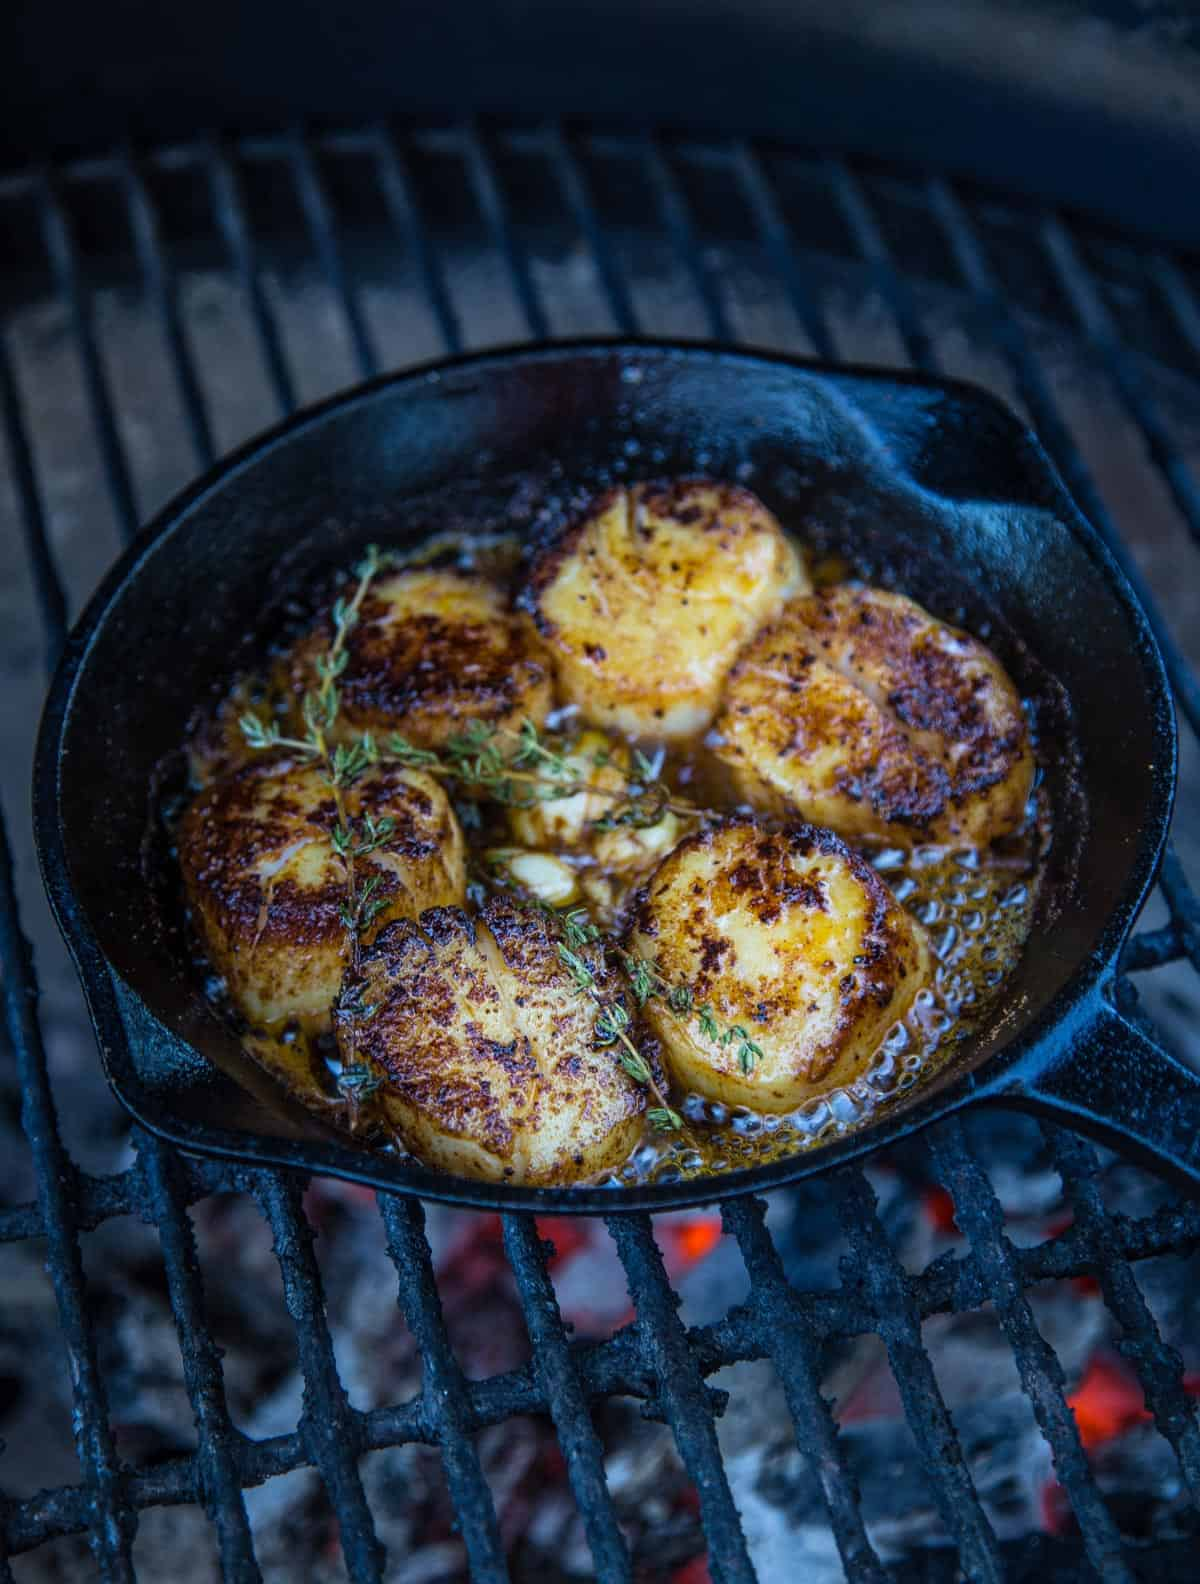 Grilled U10 scallops in a cast iron pan